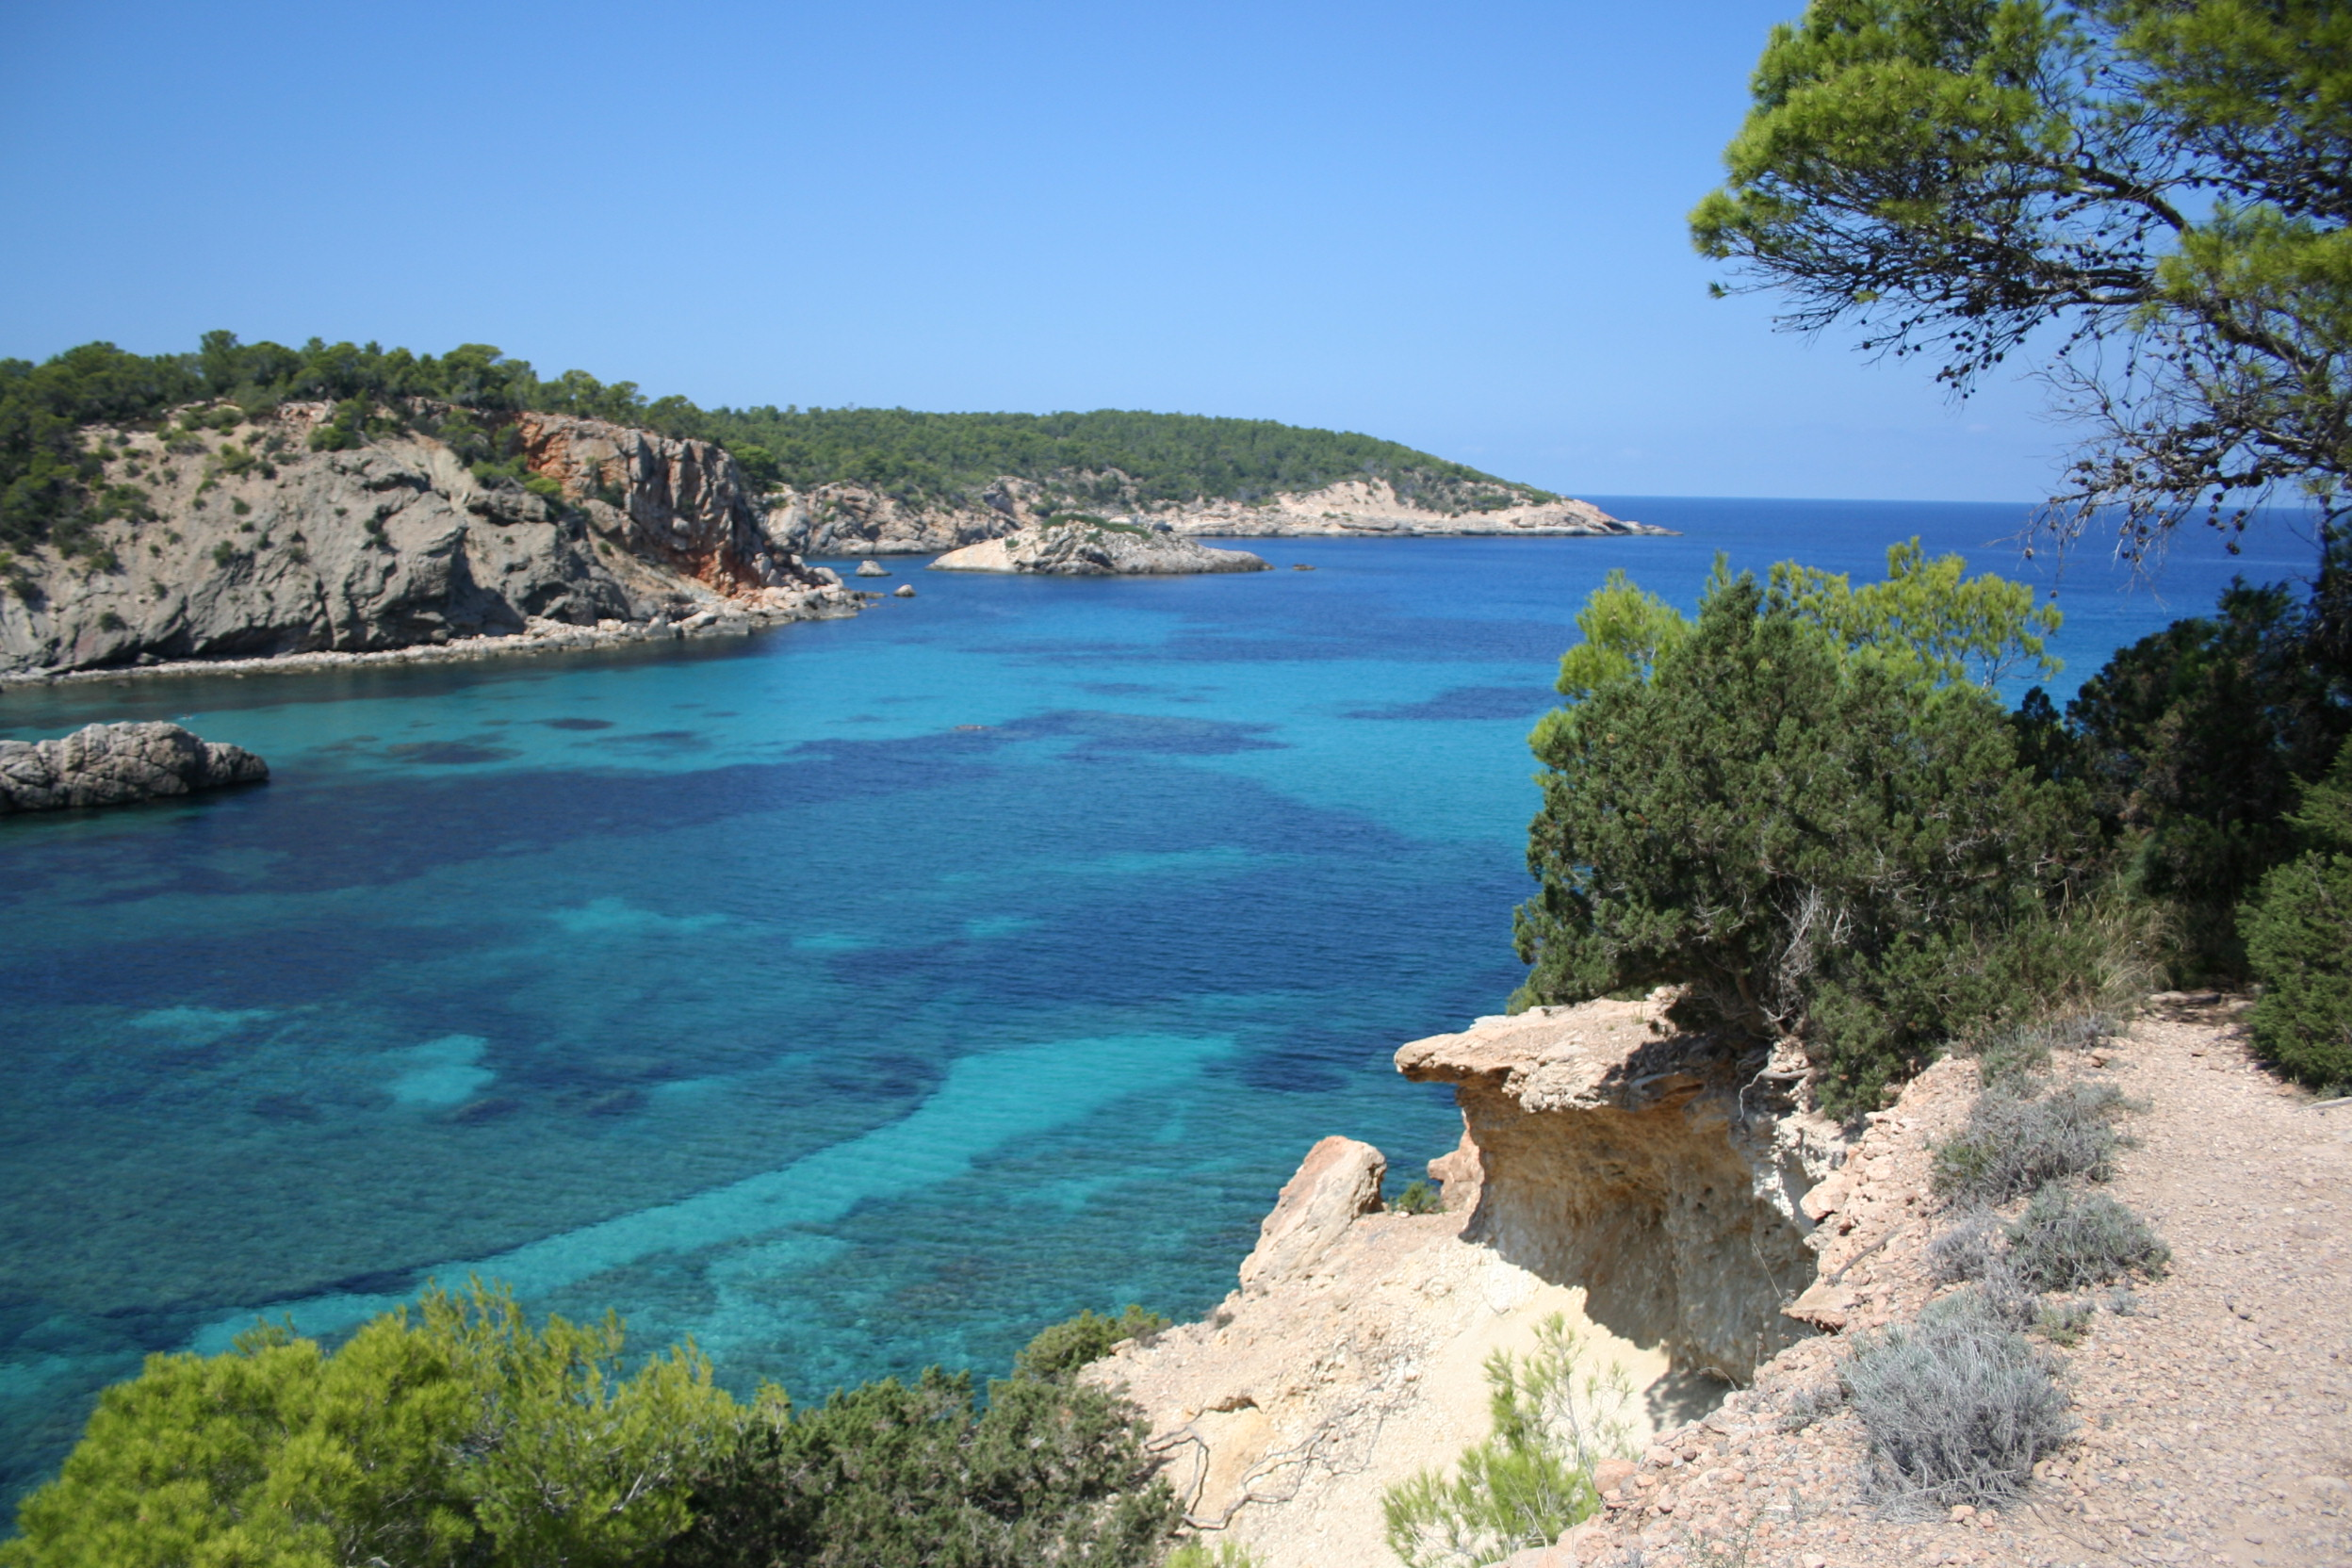 http://upload.wikimedia.org/wikipedia/commons/0/03/Cala_de_Portinatx,_Ibiza_(1672988340).jpg